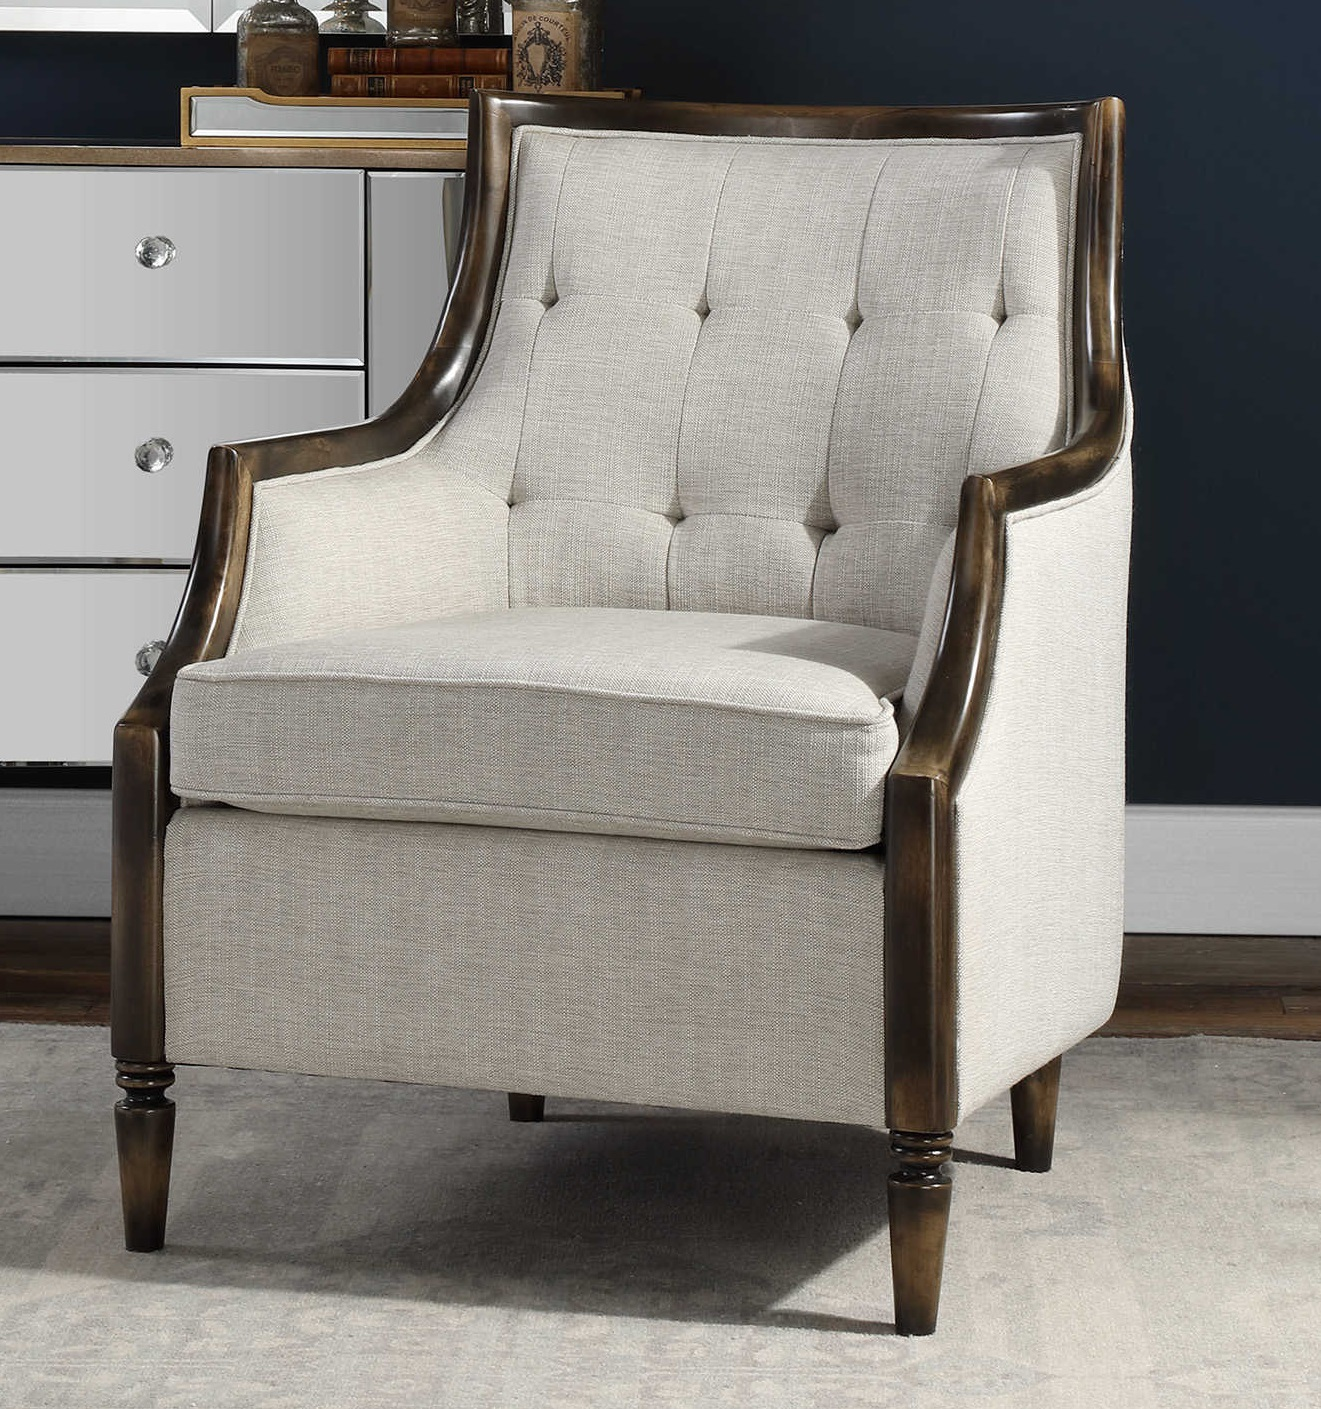 876 00 High Back Accent Chair Offering Supportive Comfort With Its Tufted In